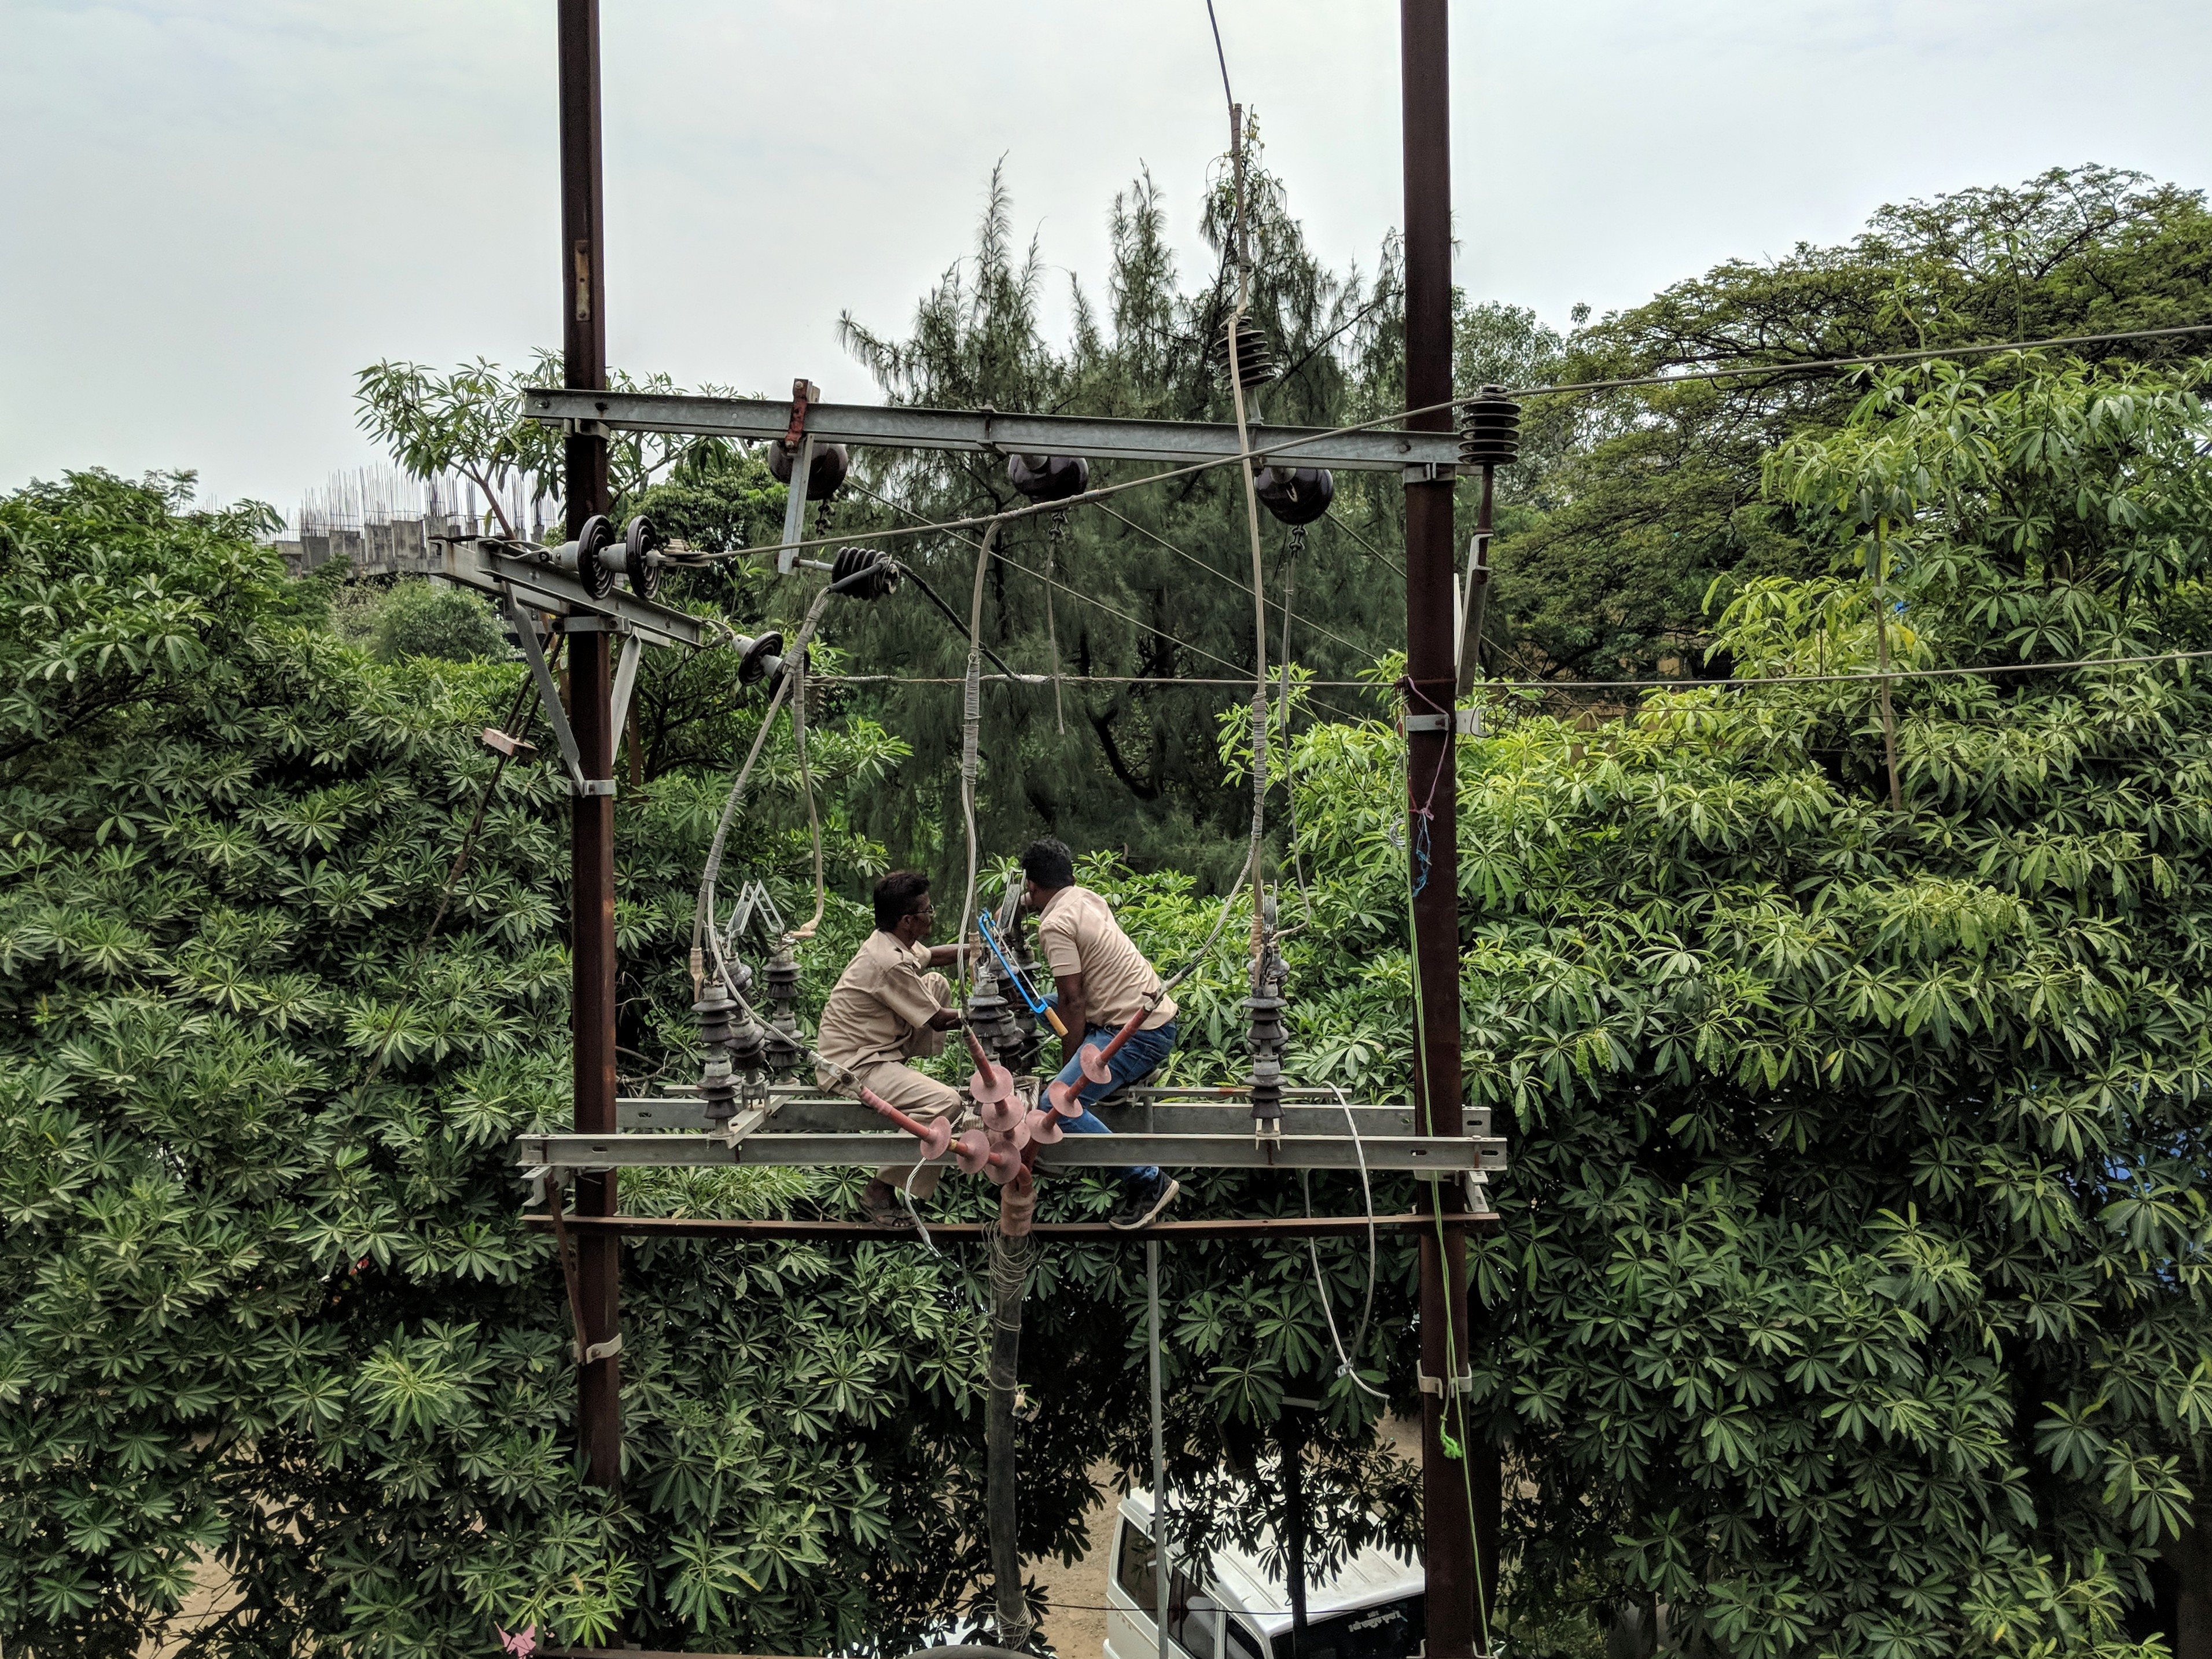 Photo of men suspended while repairing a power line in India.